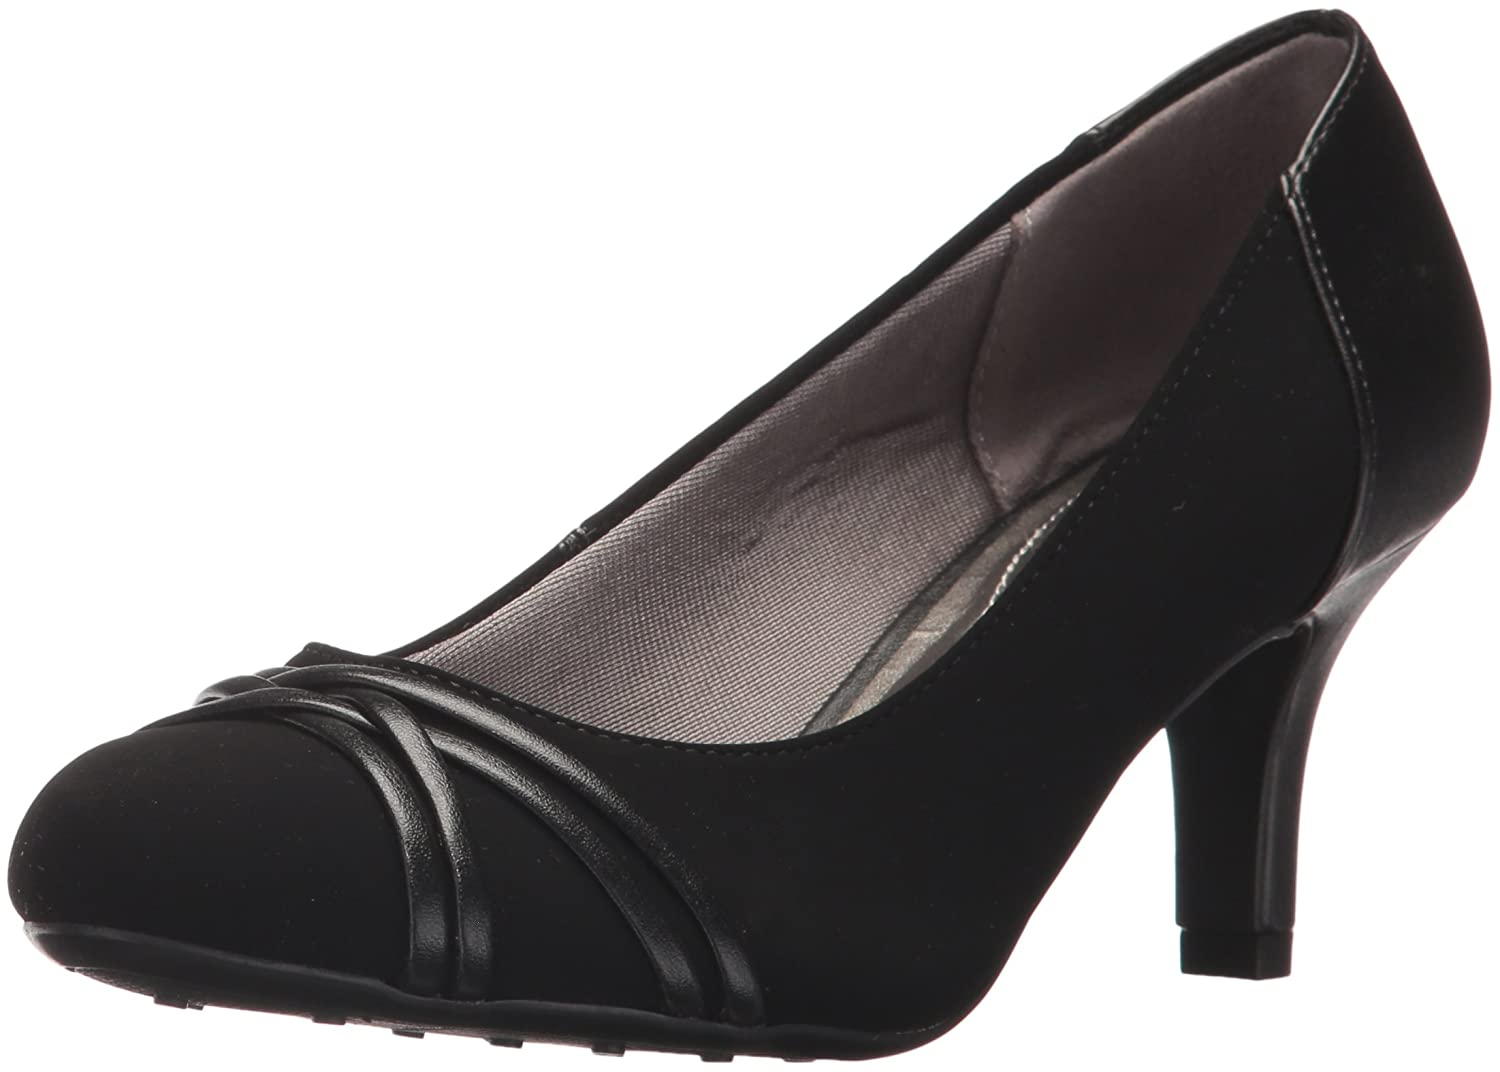 LifeStride Women's Pascal Dress Pump B07325BX7X 9.5 B(M) US|Black